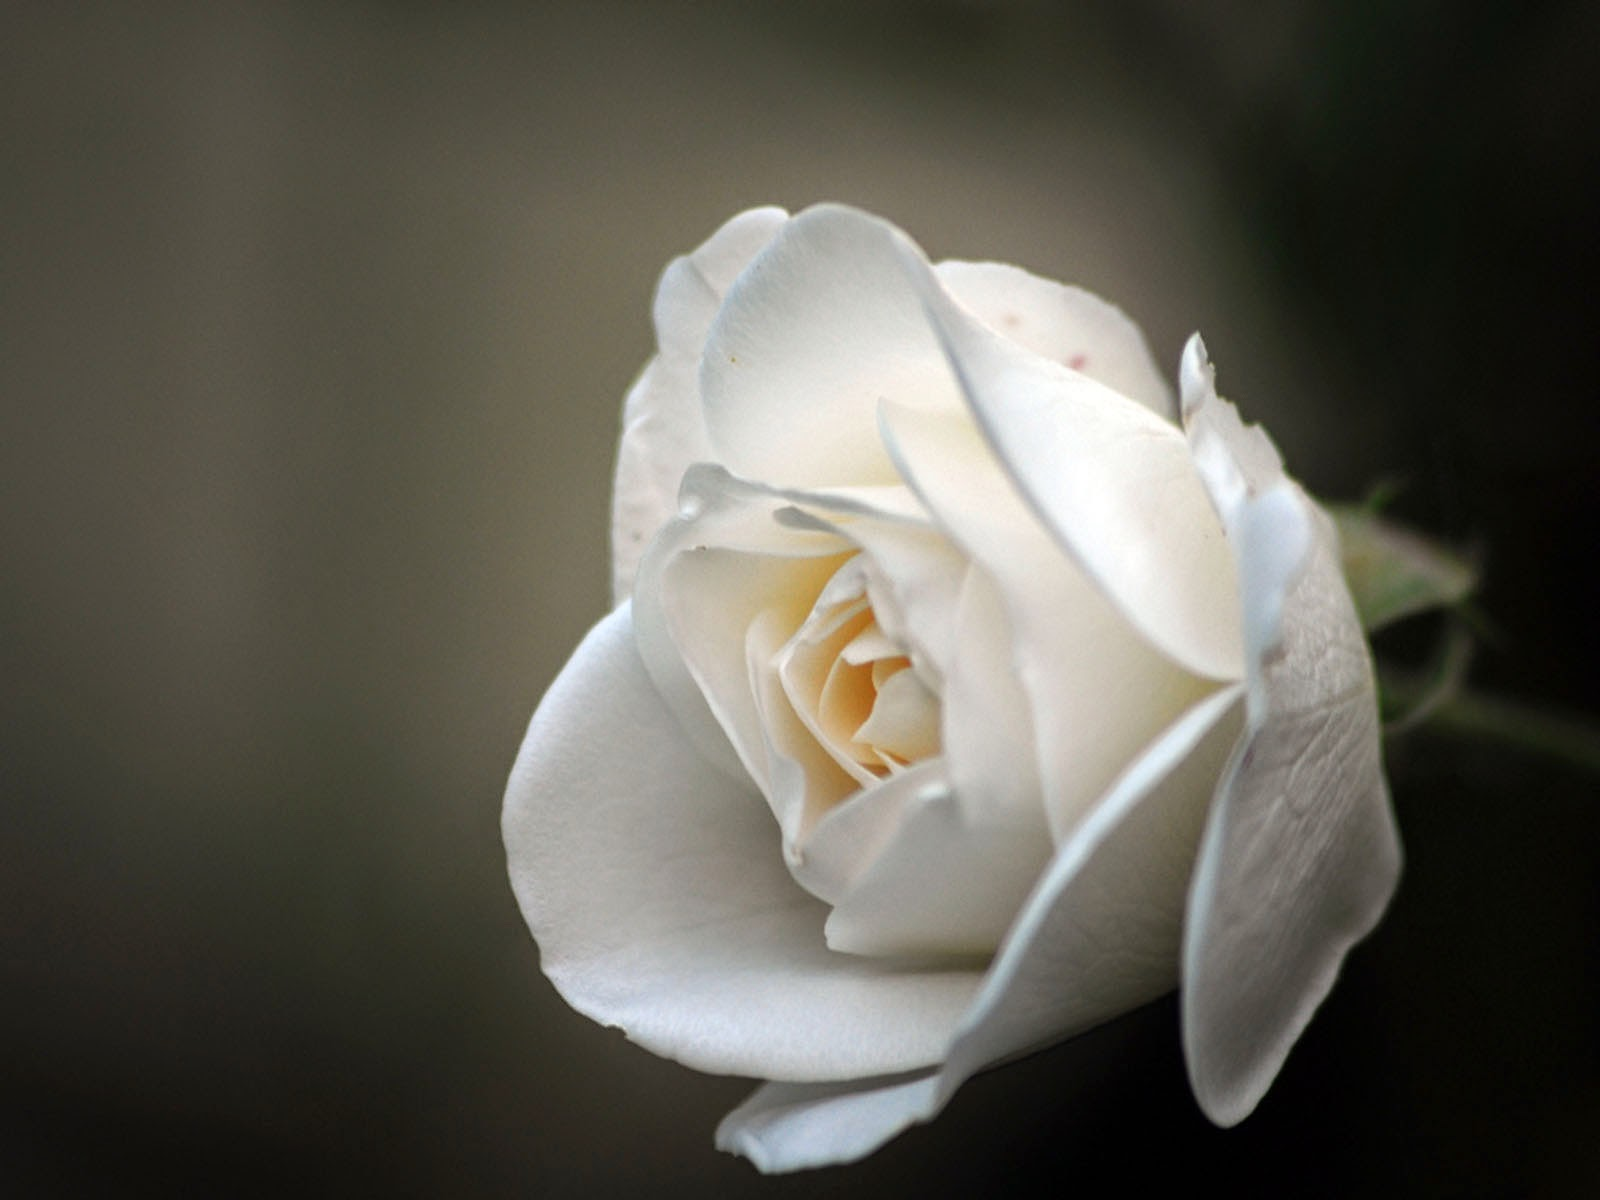 white rose backgrounds wallpapers - photo #16